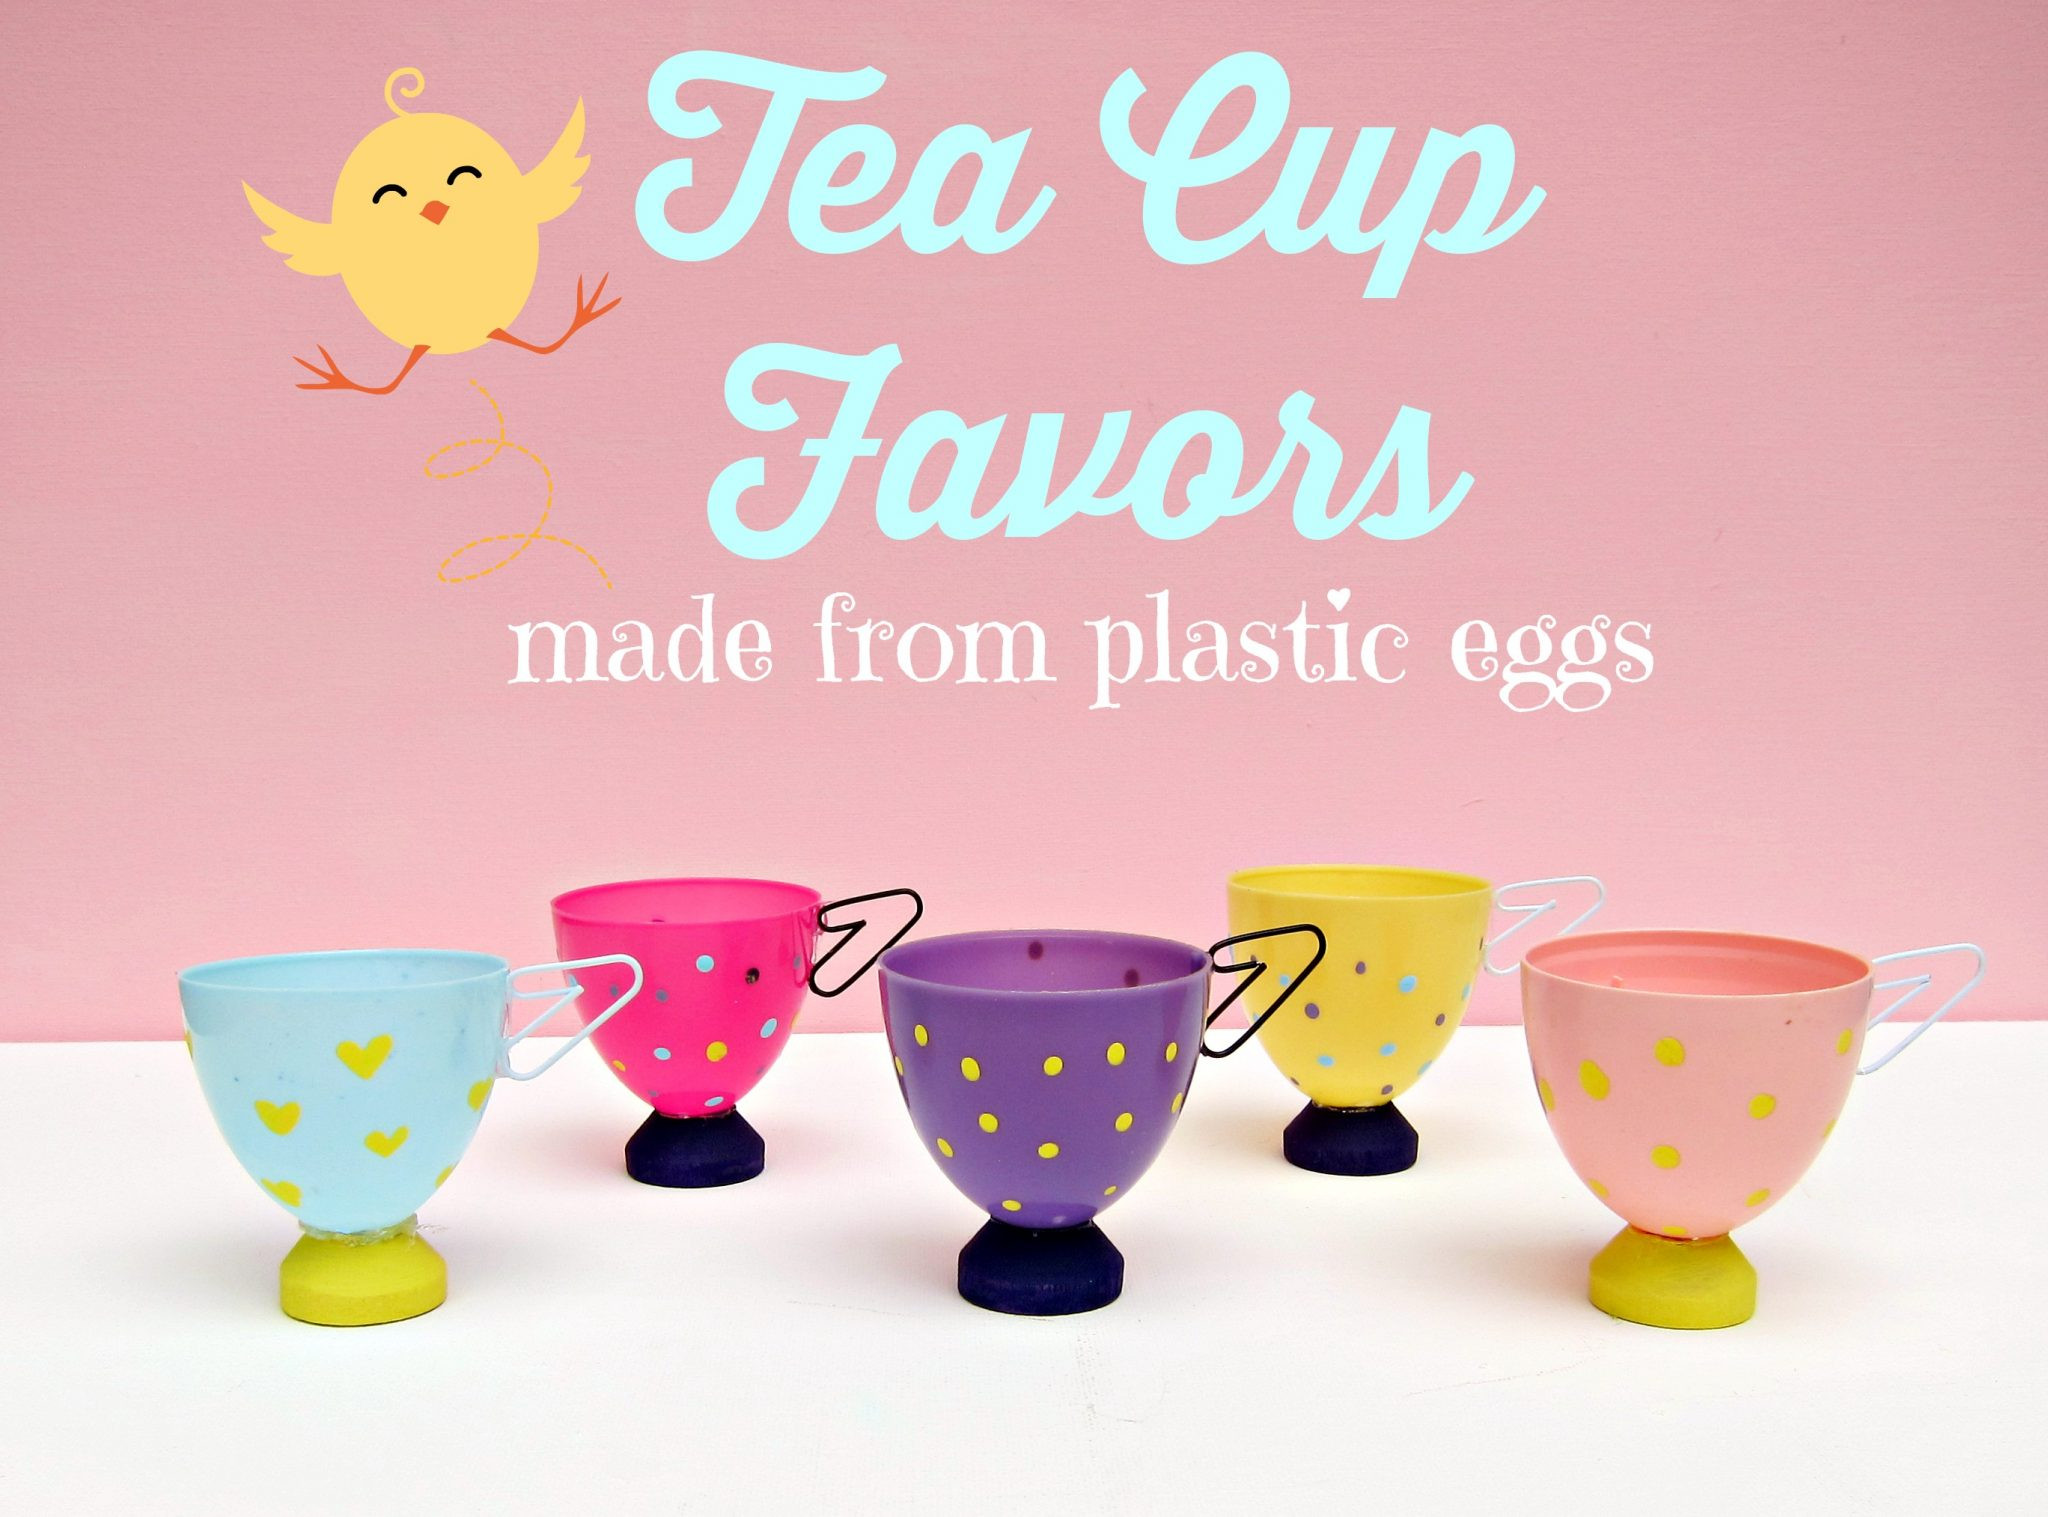 Tea Party Favors For Kids  Tea Cup Party Favors Made from Plastic Eggs Dollar Store